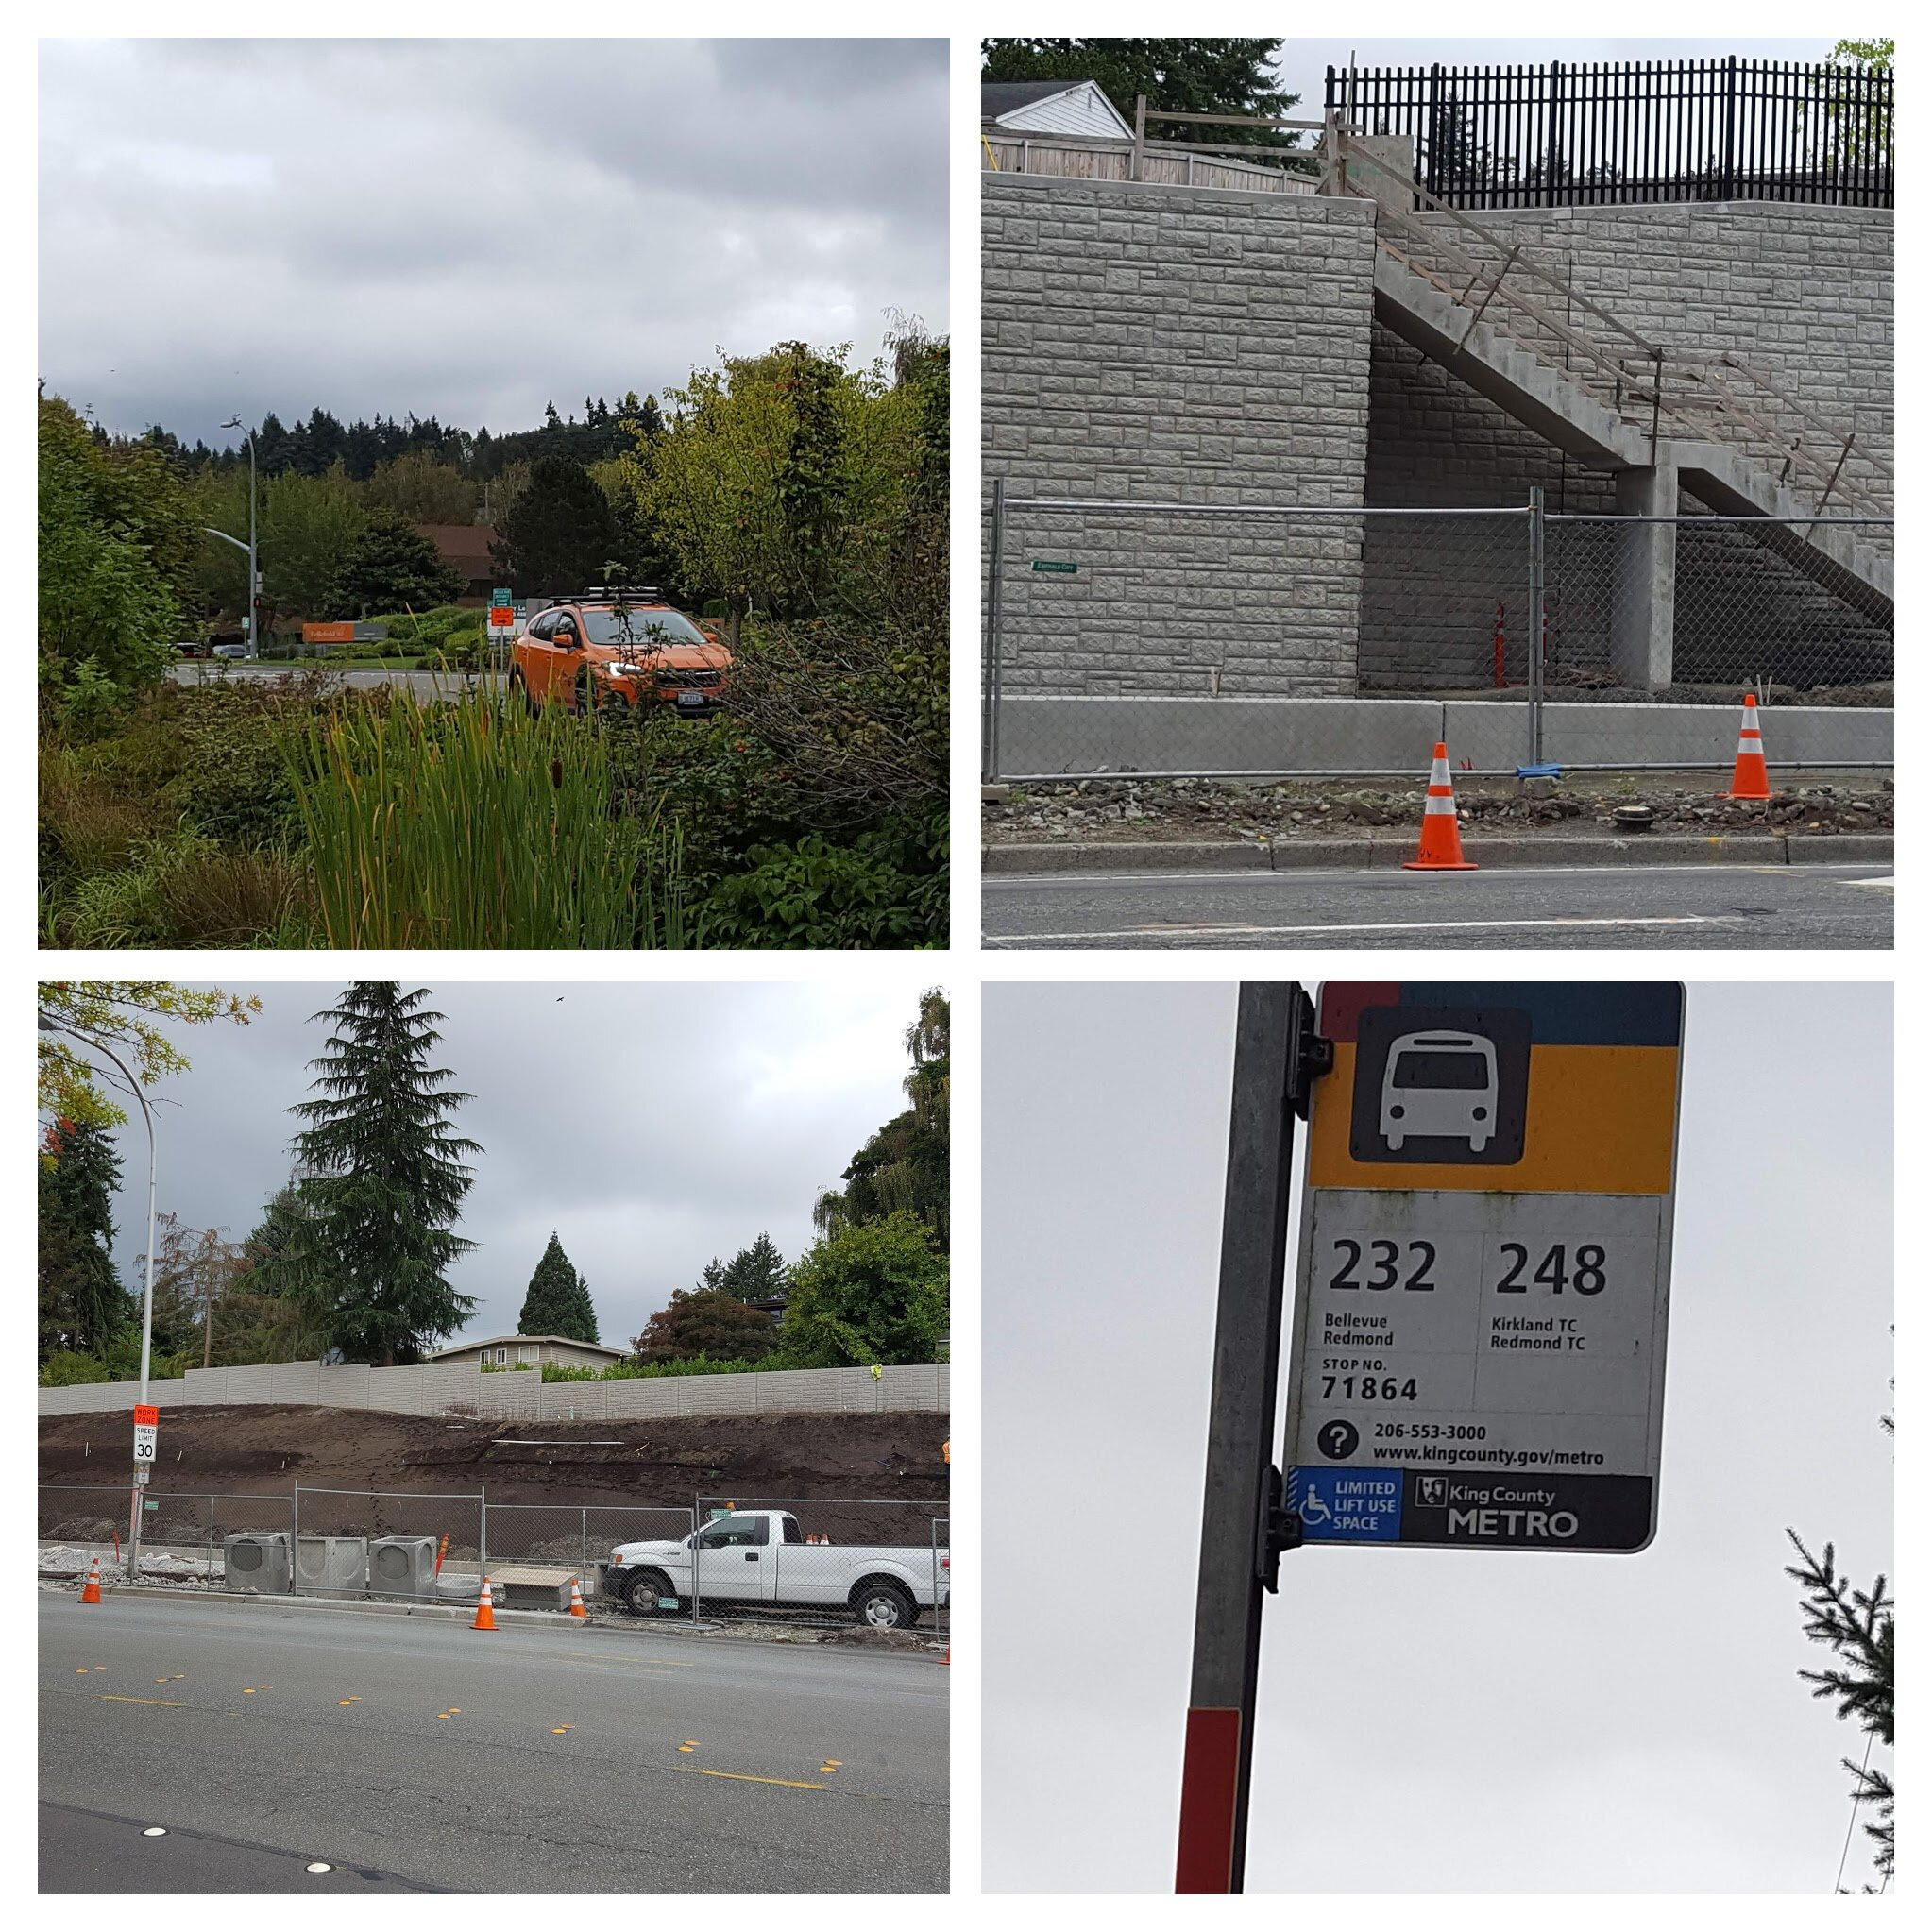 Top left: approaching the office park; top right: a stairway that will probably be part of a future light rail station; bottom left: light rail construction; bottom right: waiting for the bus